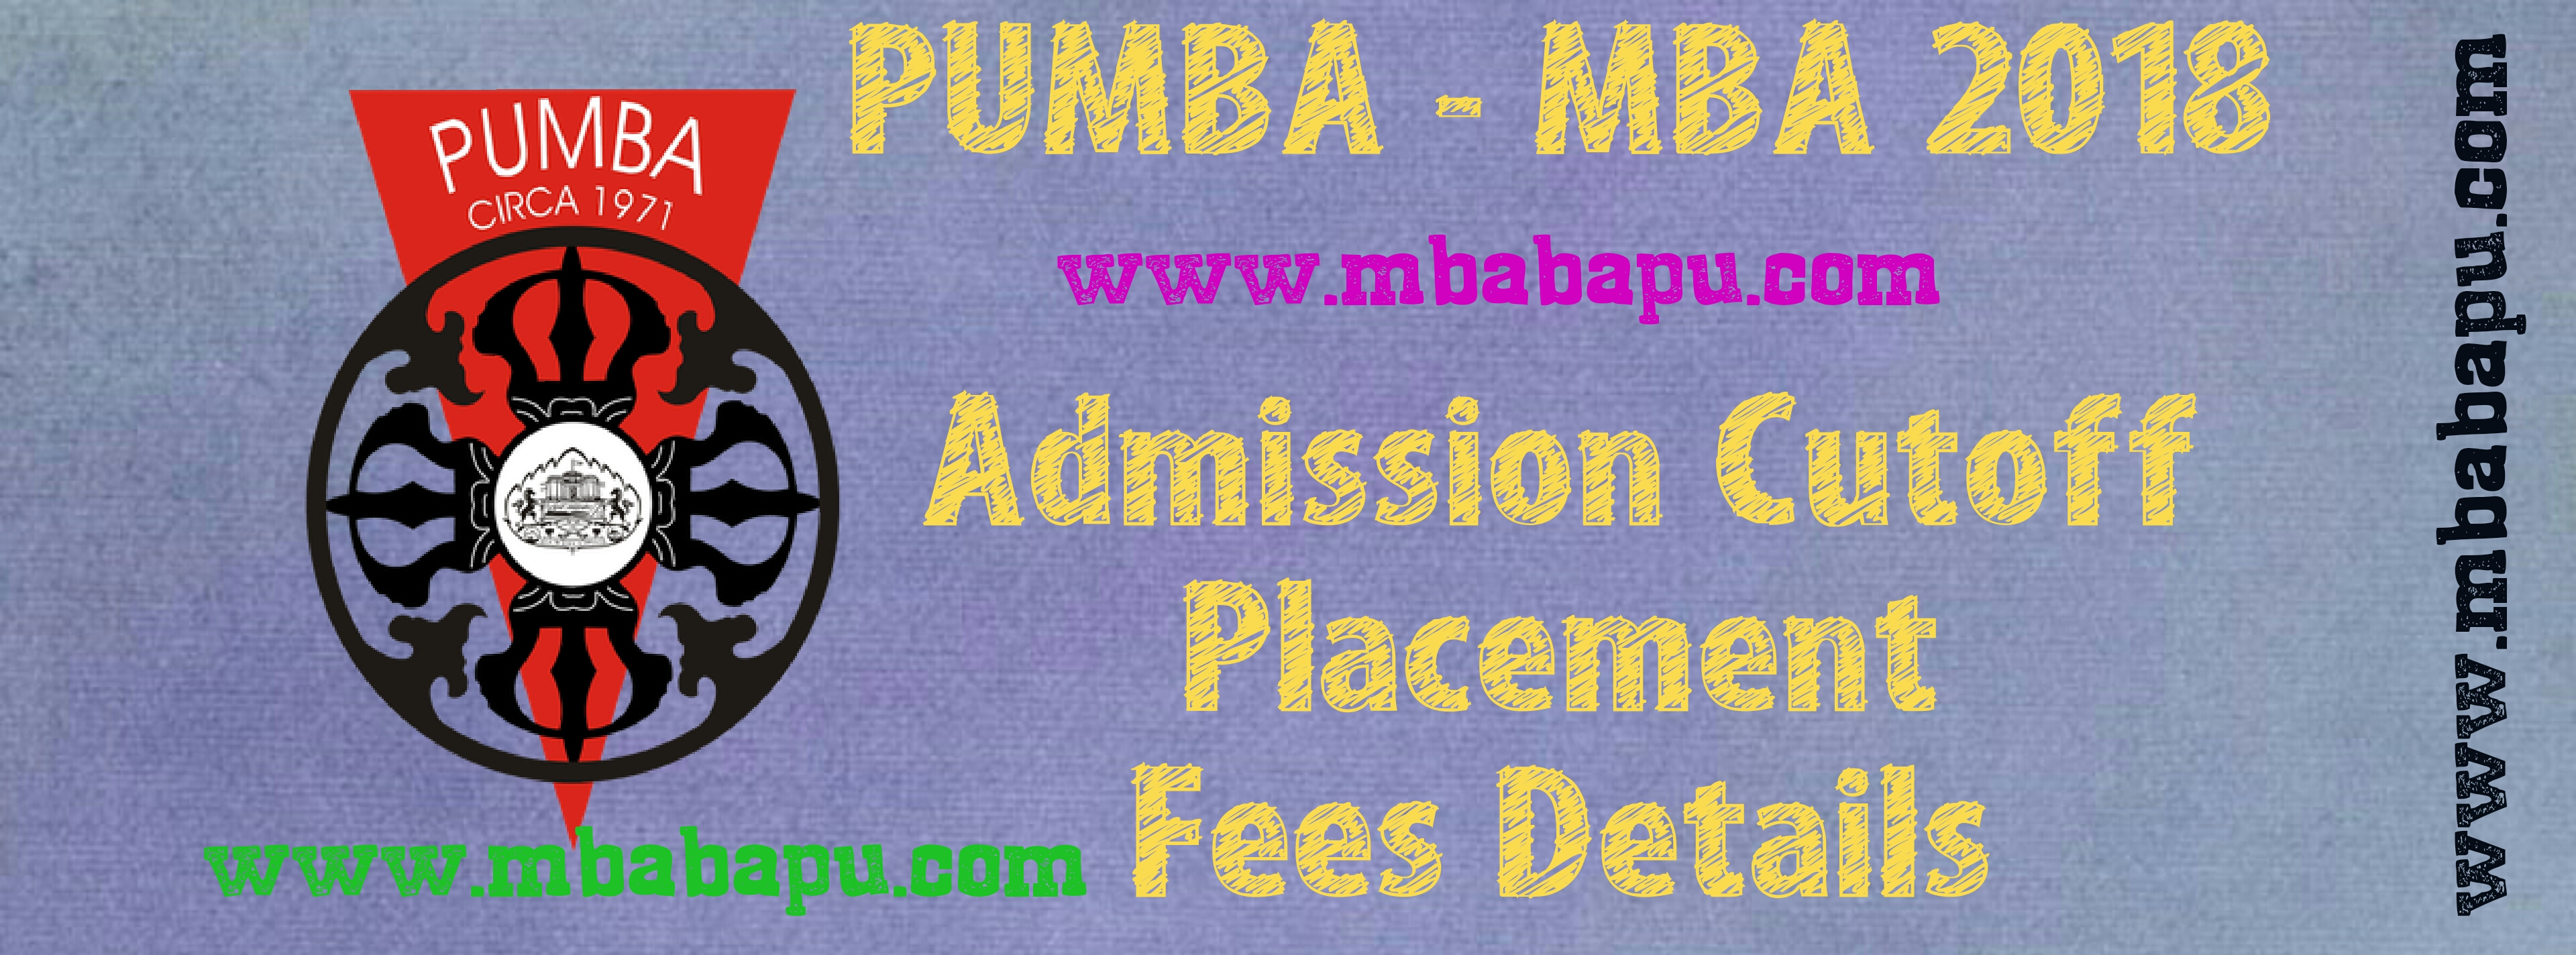 MBA at PUMBA - PUMBA admission cutoff, Placements, Fees details